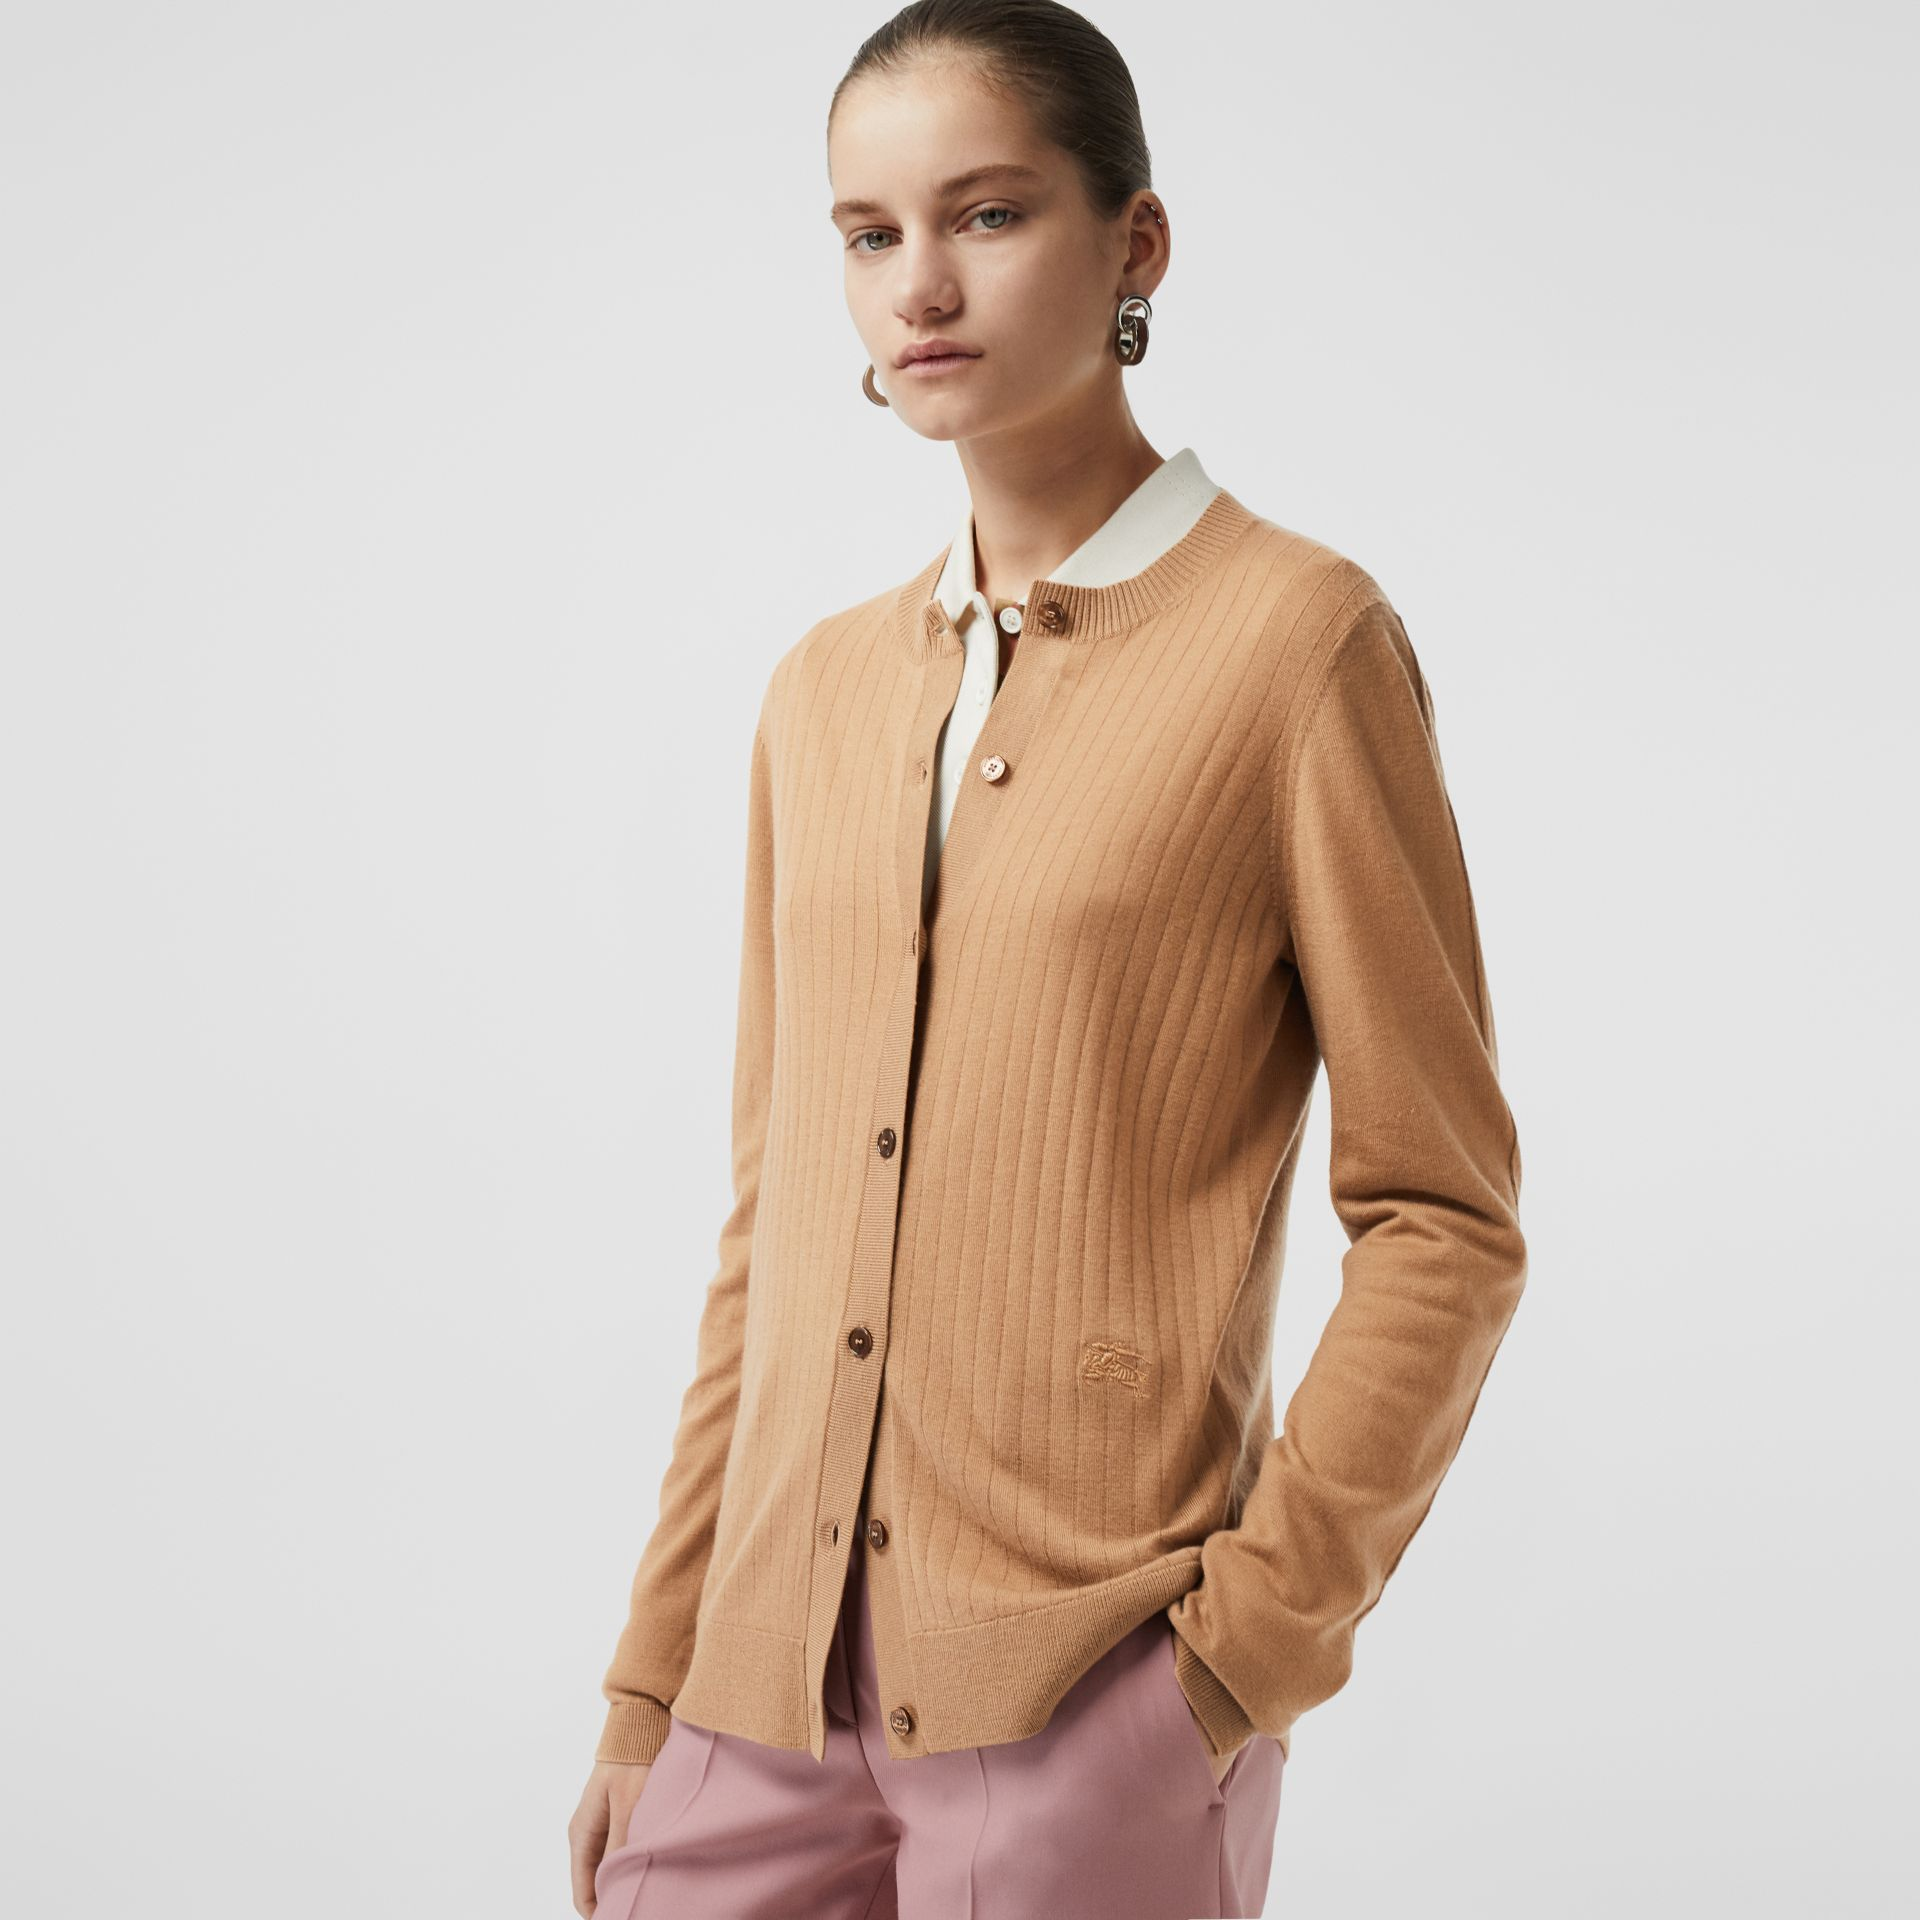 Rib Knit Cashmere Cardigan in Camel - Women | Burberry - gallery image 4